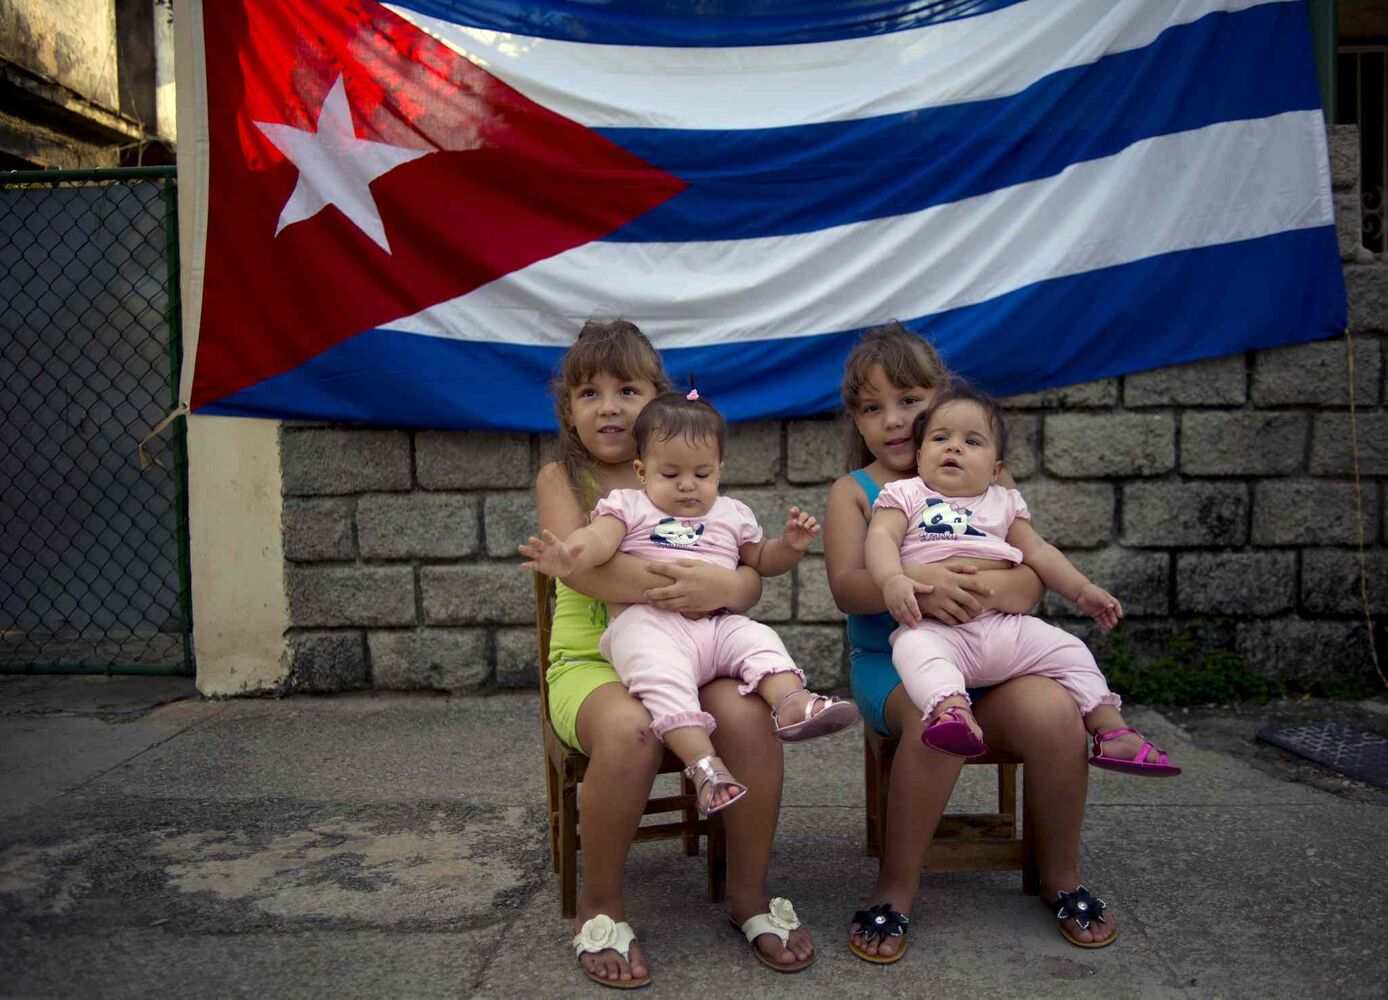 Six-year-old twins Asley and Aslen Velazquez hold eight-month-old twins Tiffani and Stessany Valles as they pose for portraits in front a Cuban flag on their street in Havana, Cuba.  (Ramon Espinosa / The Associated Press)